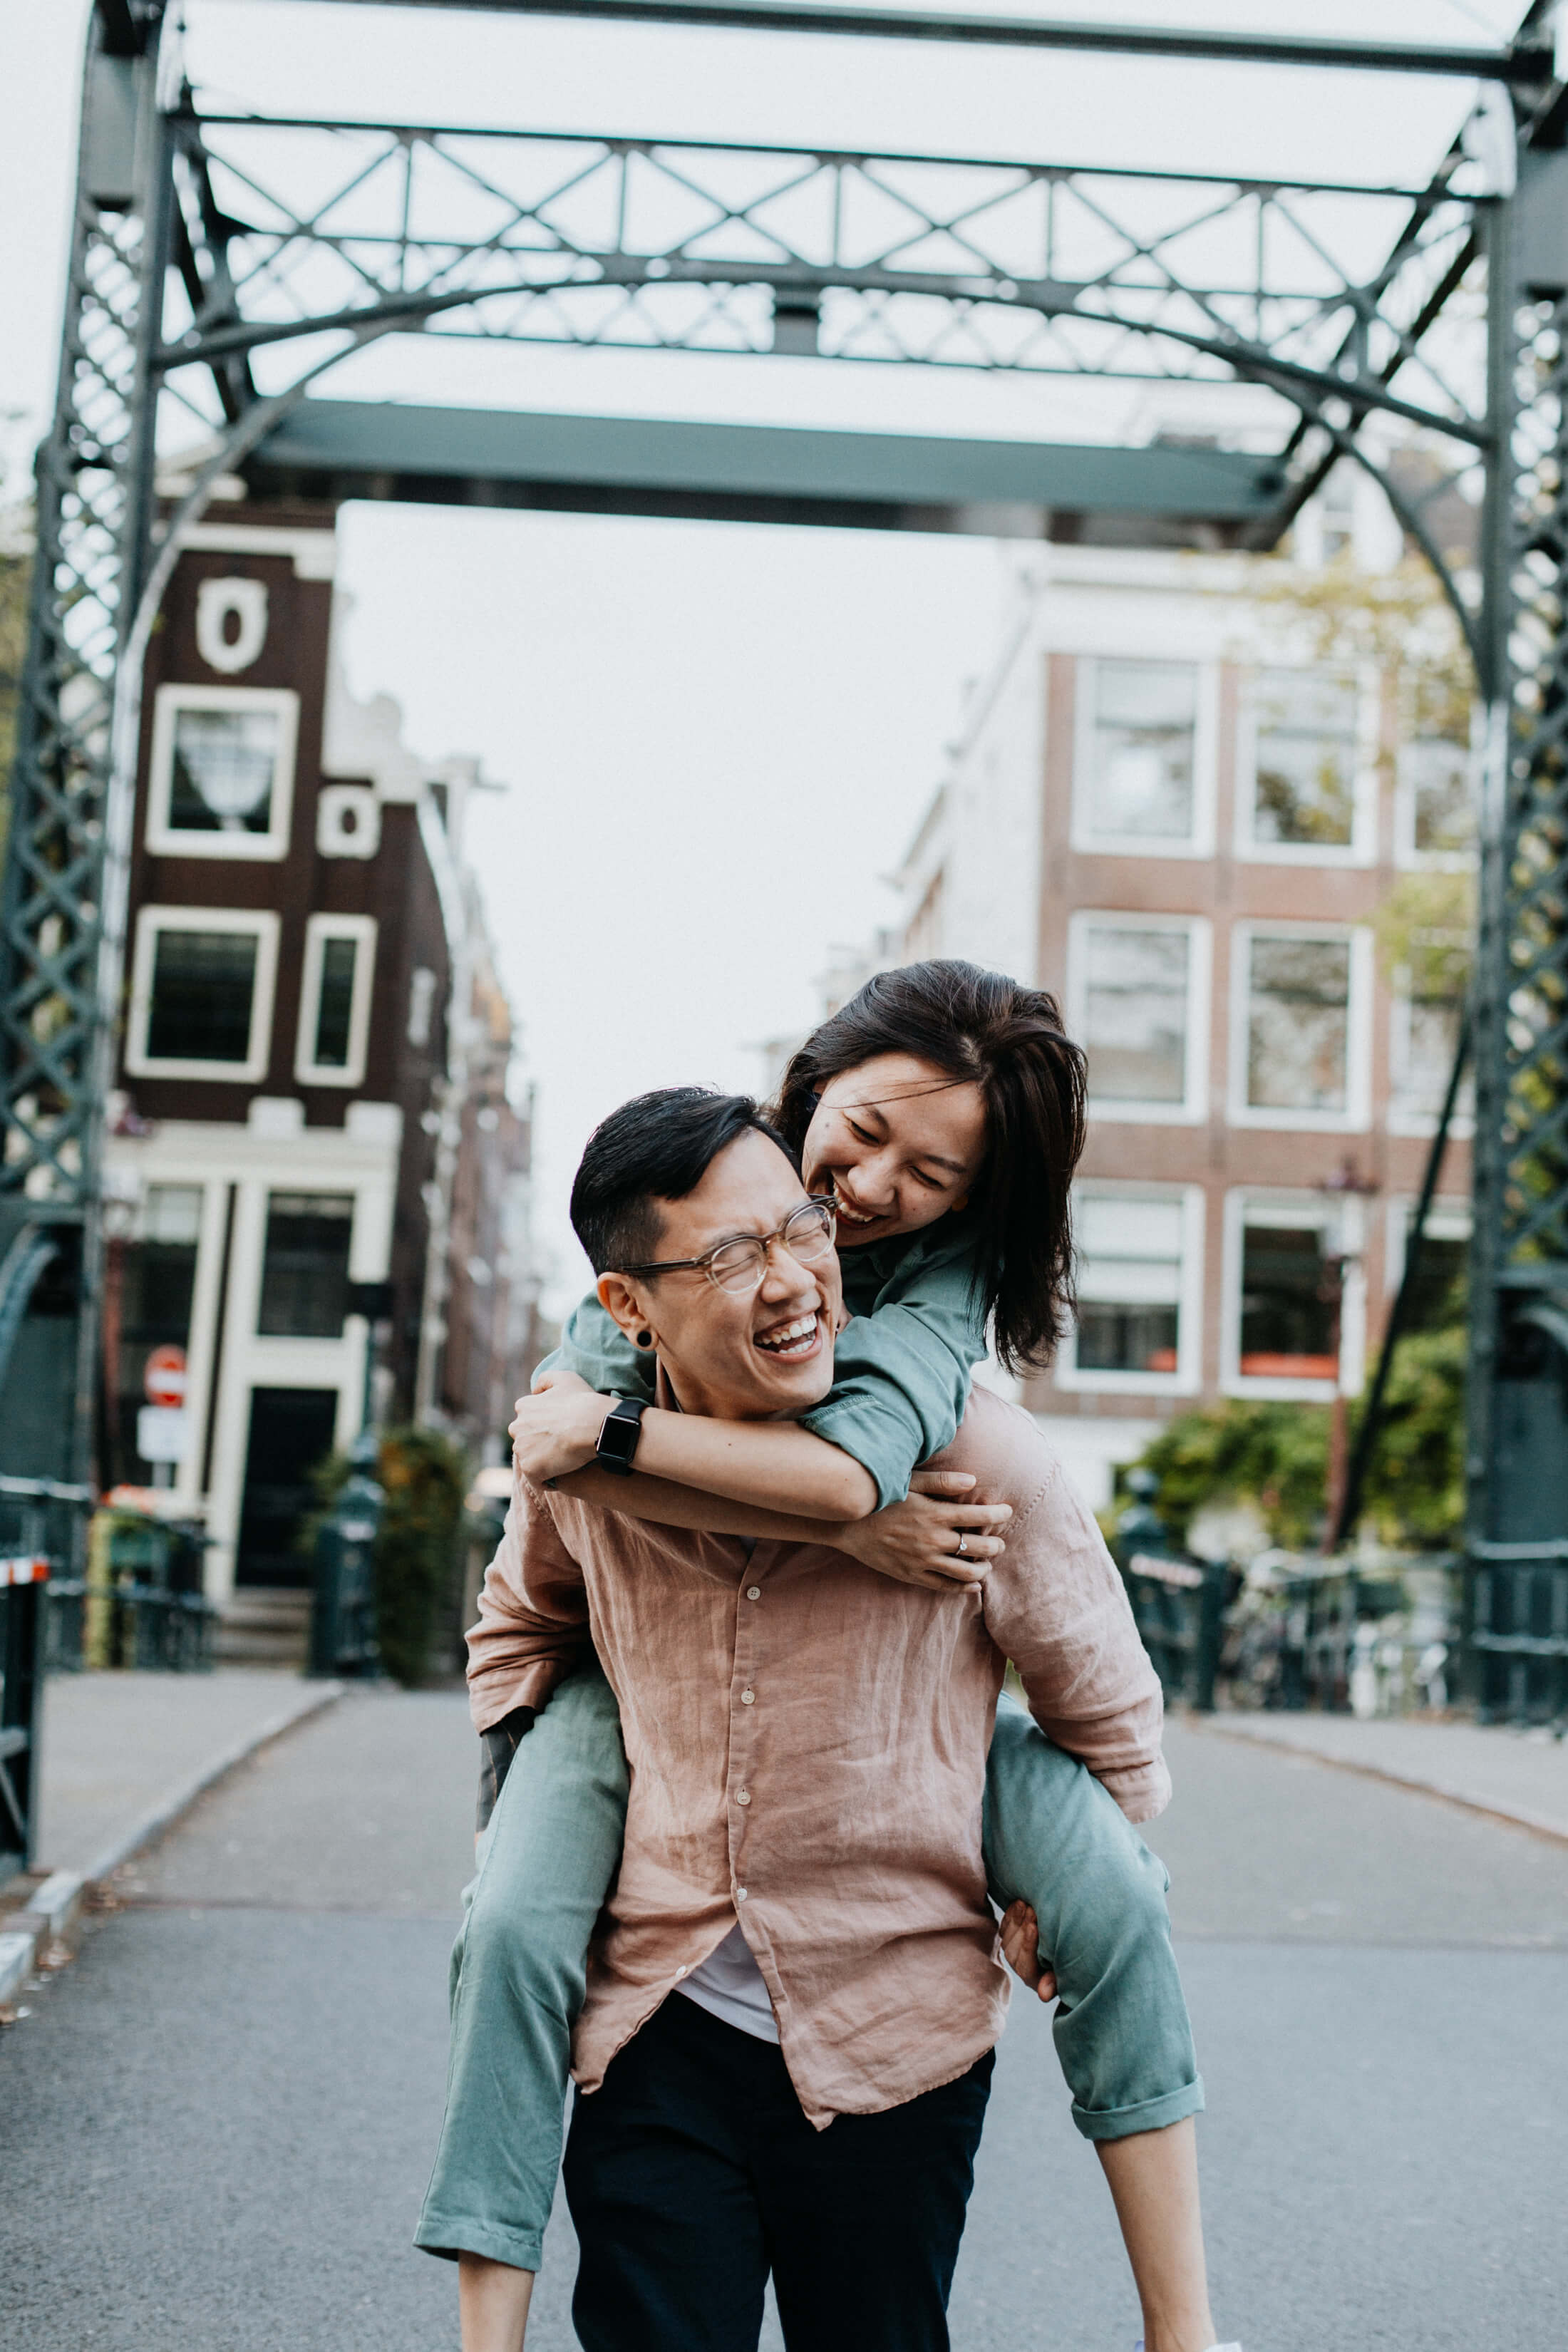 A man is kneeling on one knee and proposing to a woman on a bridge in Amsterdam. Both are wearing casual outfits. The woman is wearing a stylish jumper.